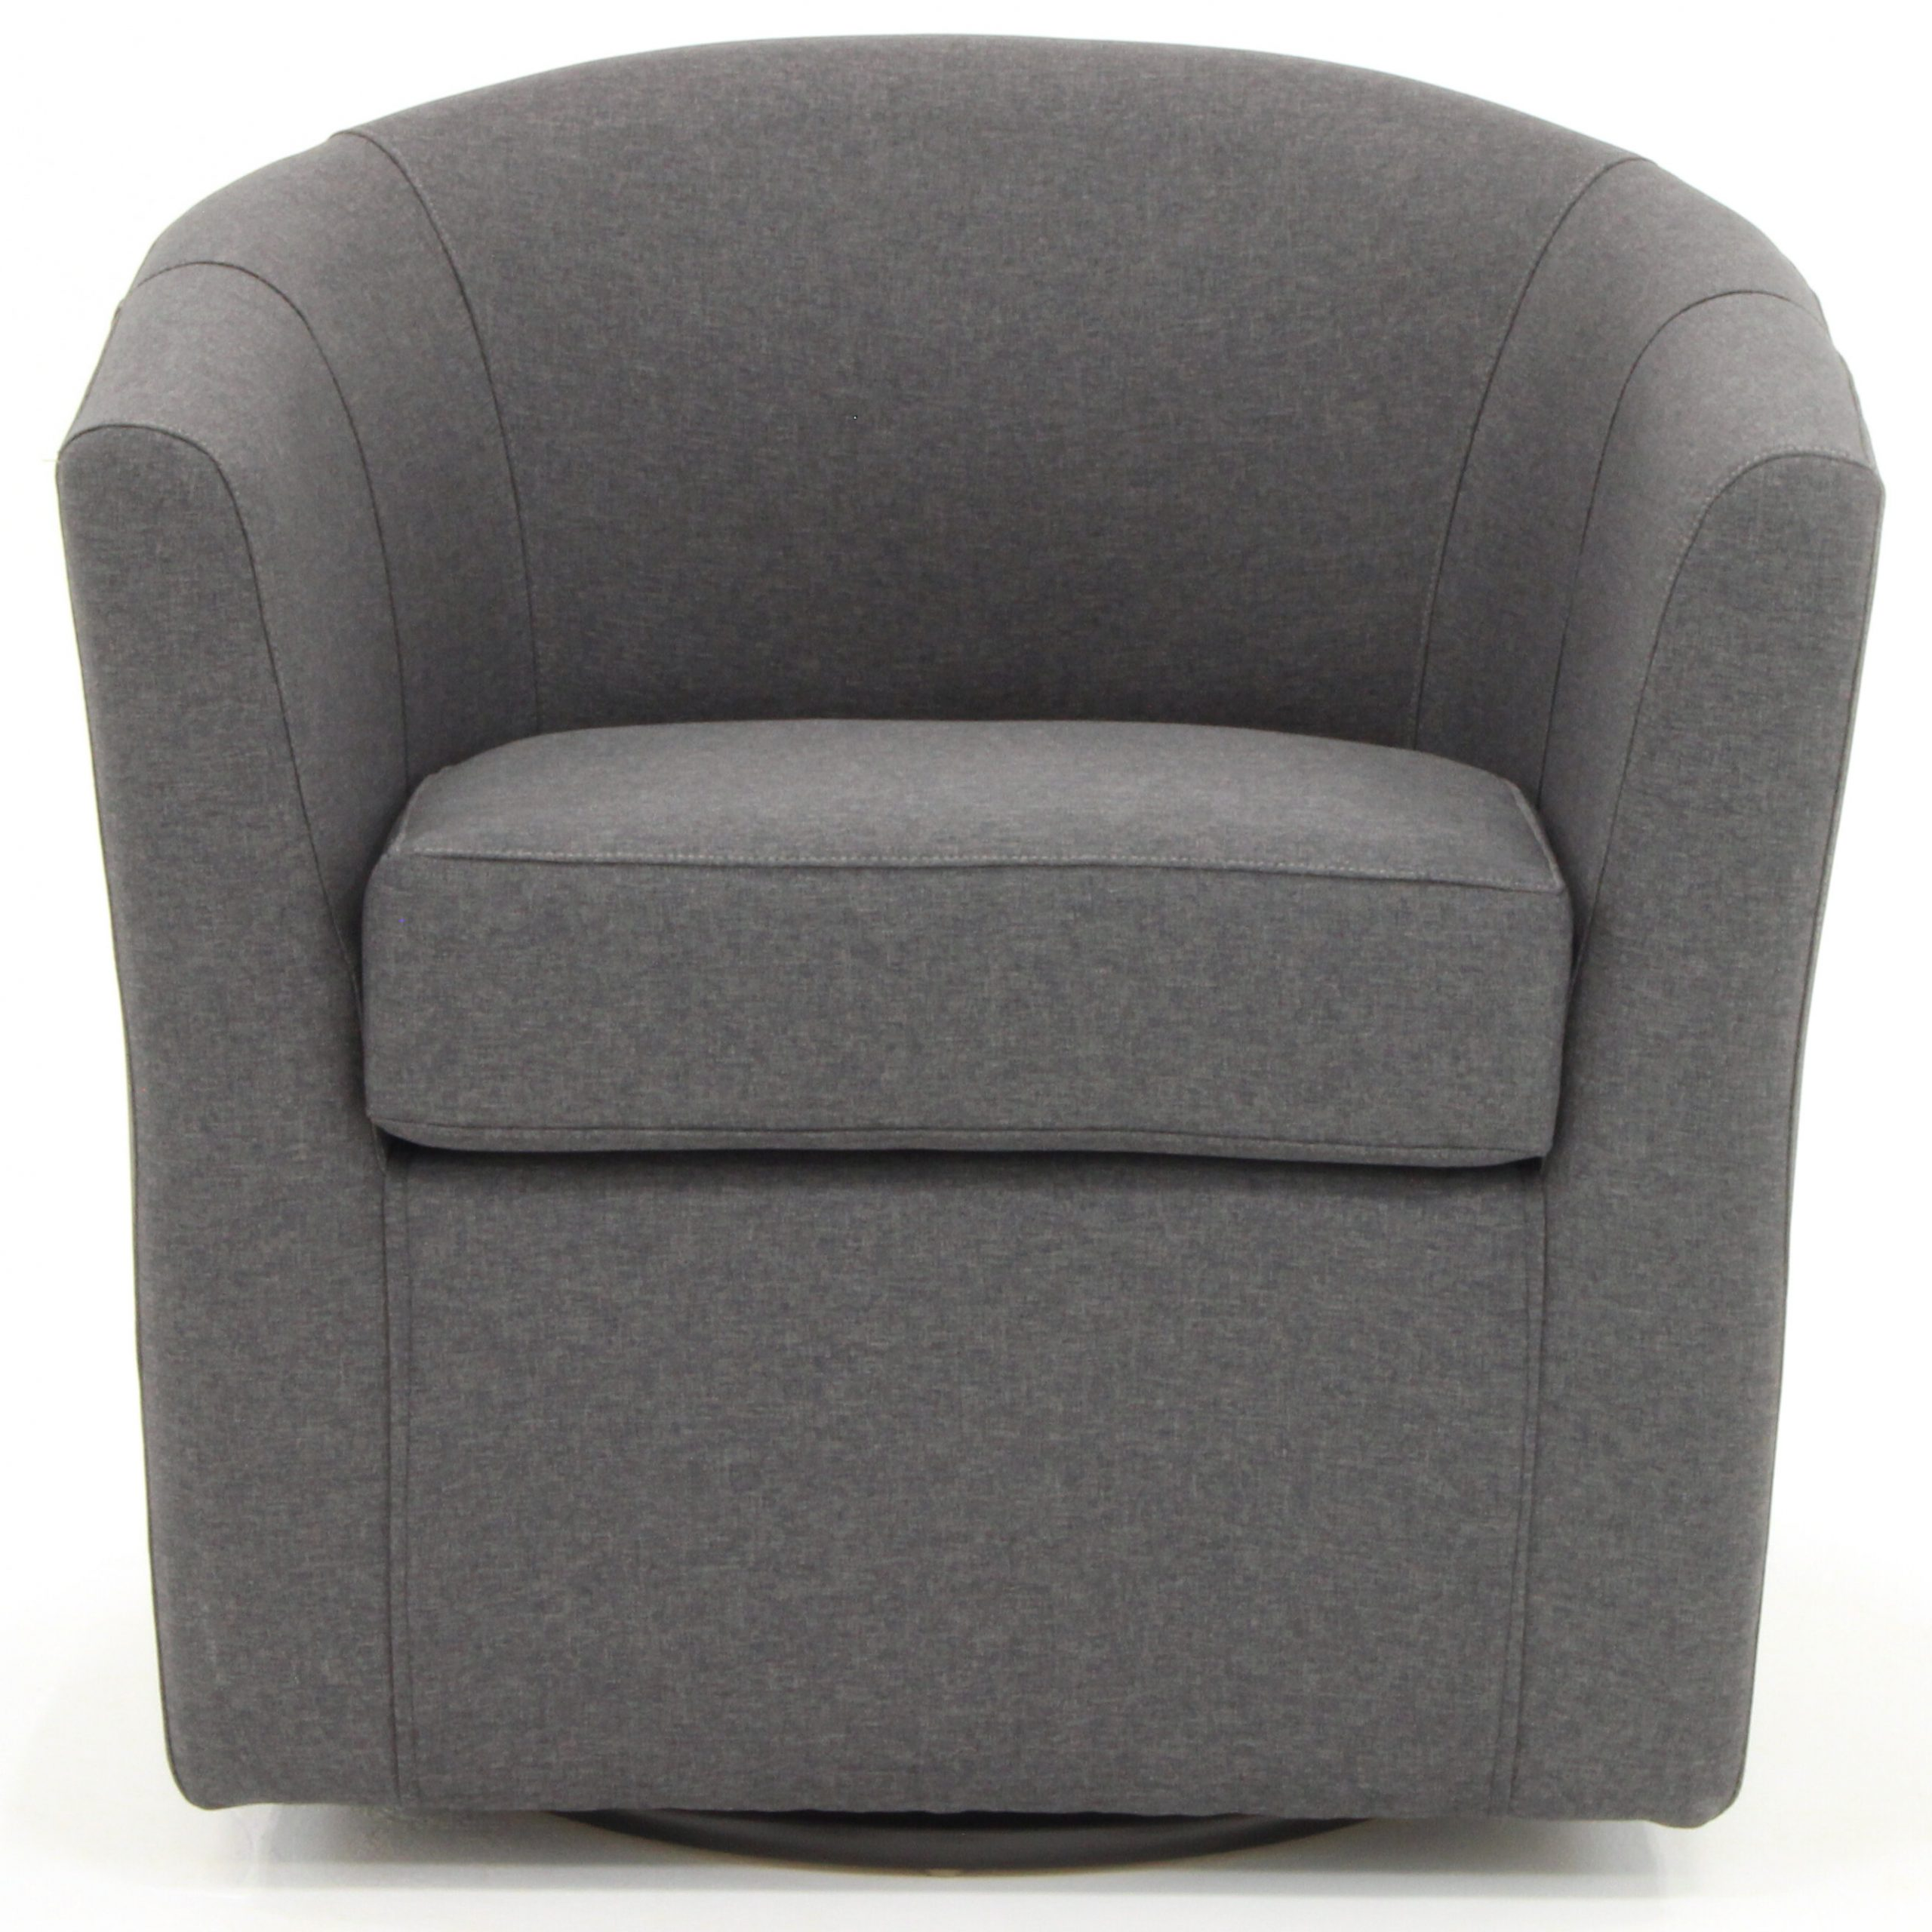 Wayfair Pertaining To Lau Barrel Chairs (View 3 of 20)